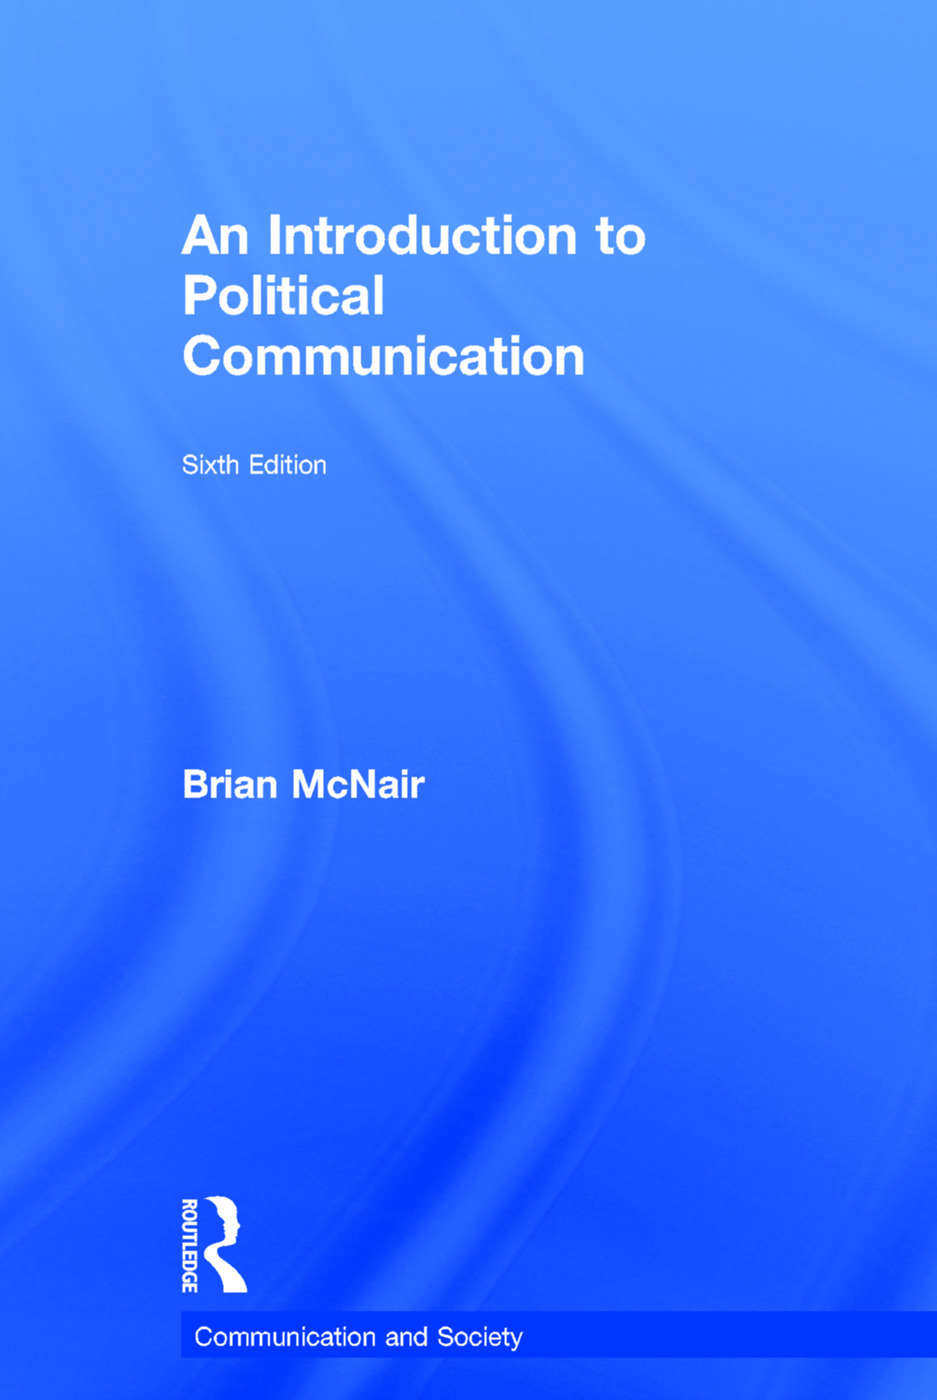 Politics in the age of mediation